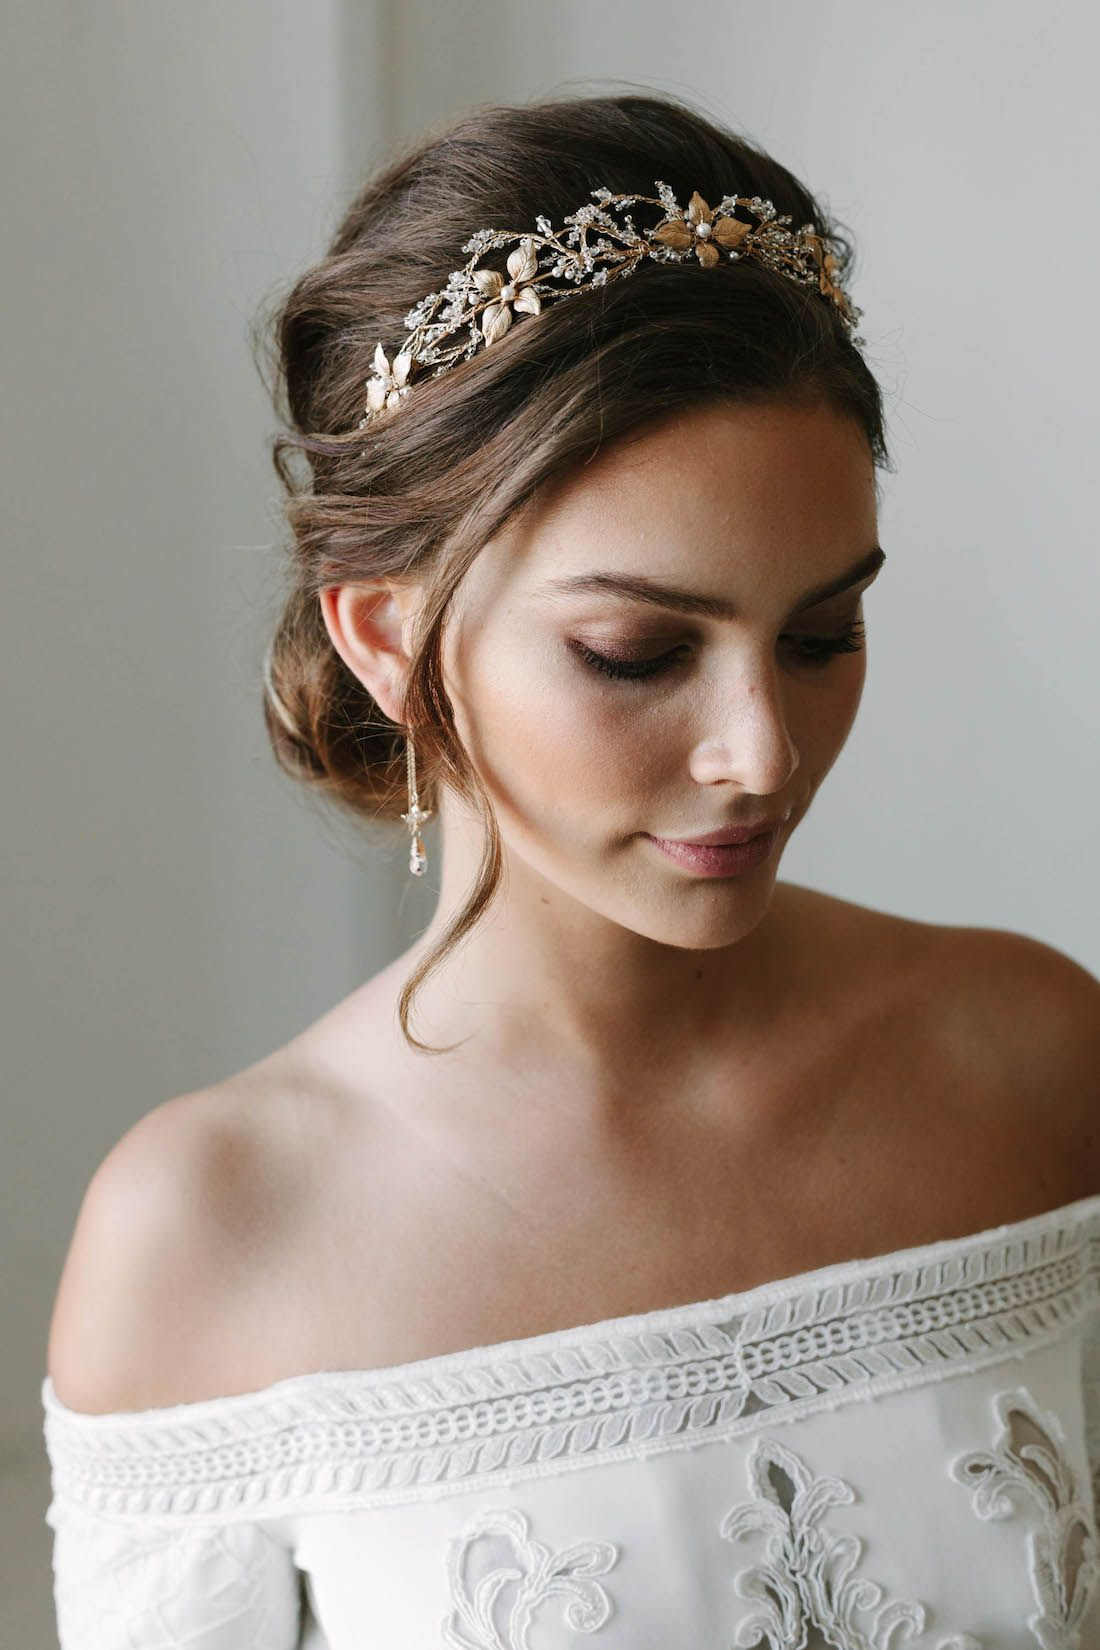 rosebury crystal wedding crown | tania maras | bridal headpieces